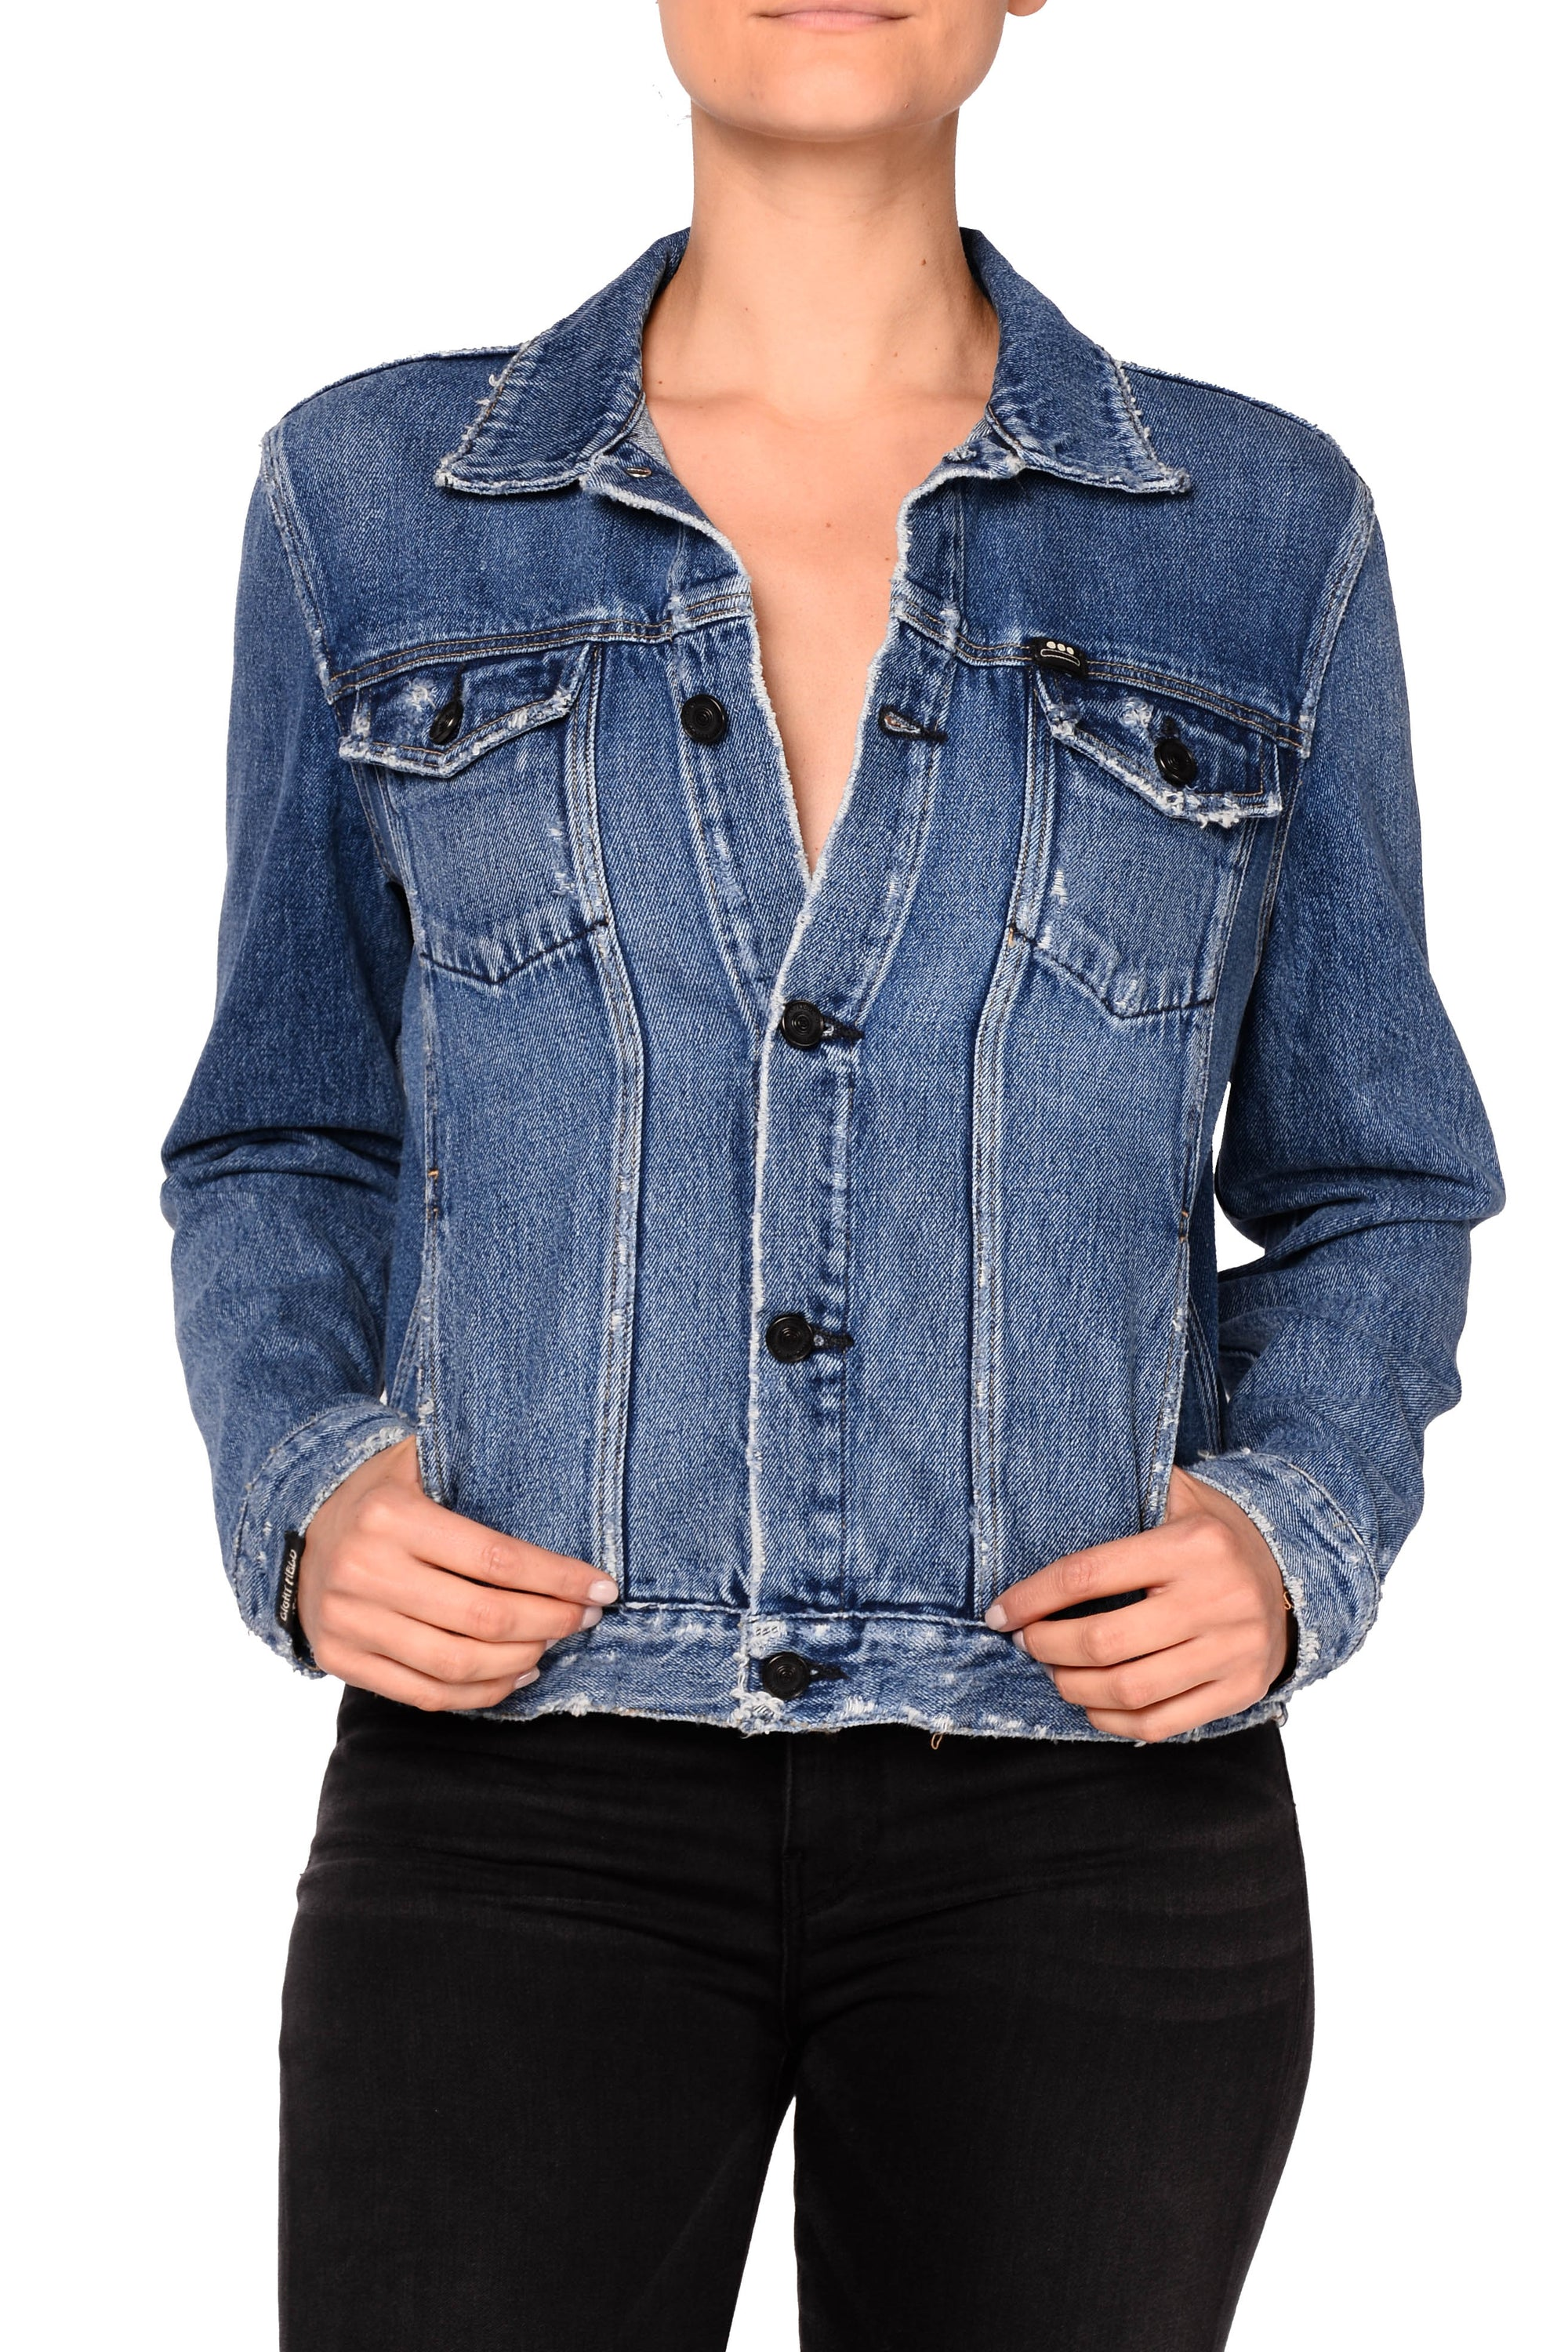 Axl Boyfriend Denim Jacket - Obsession